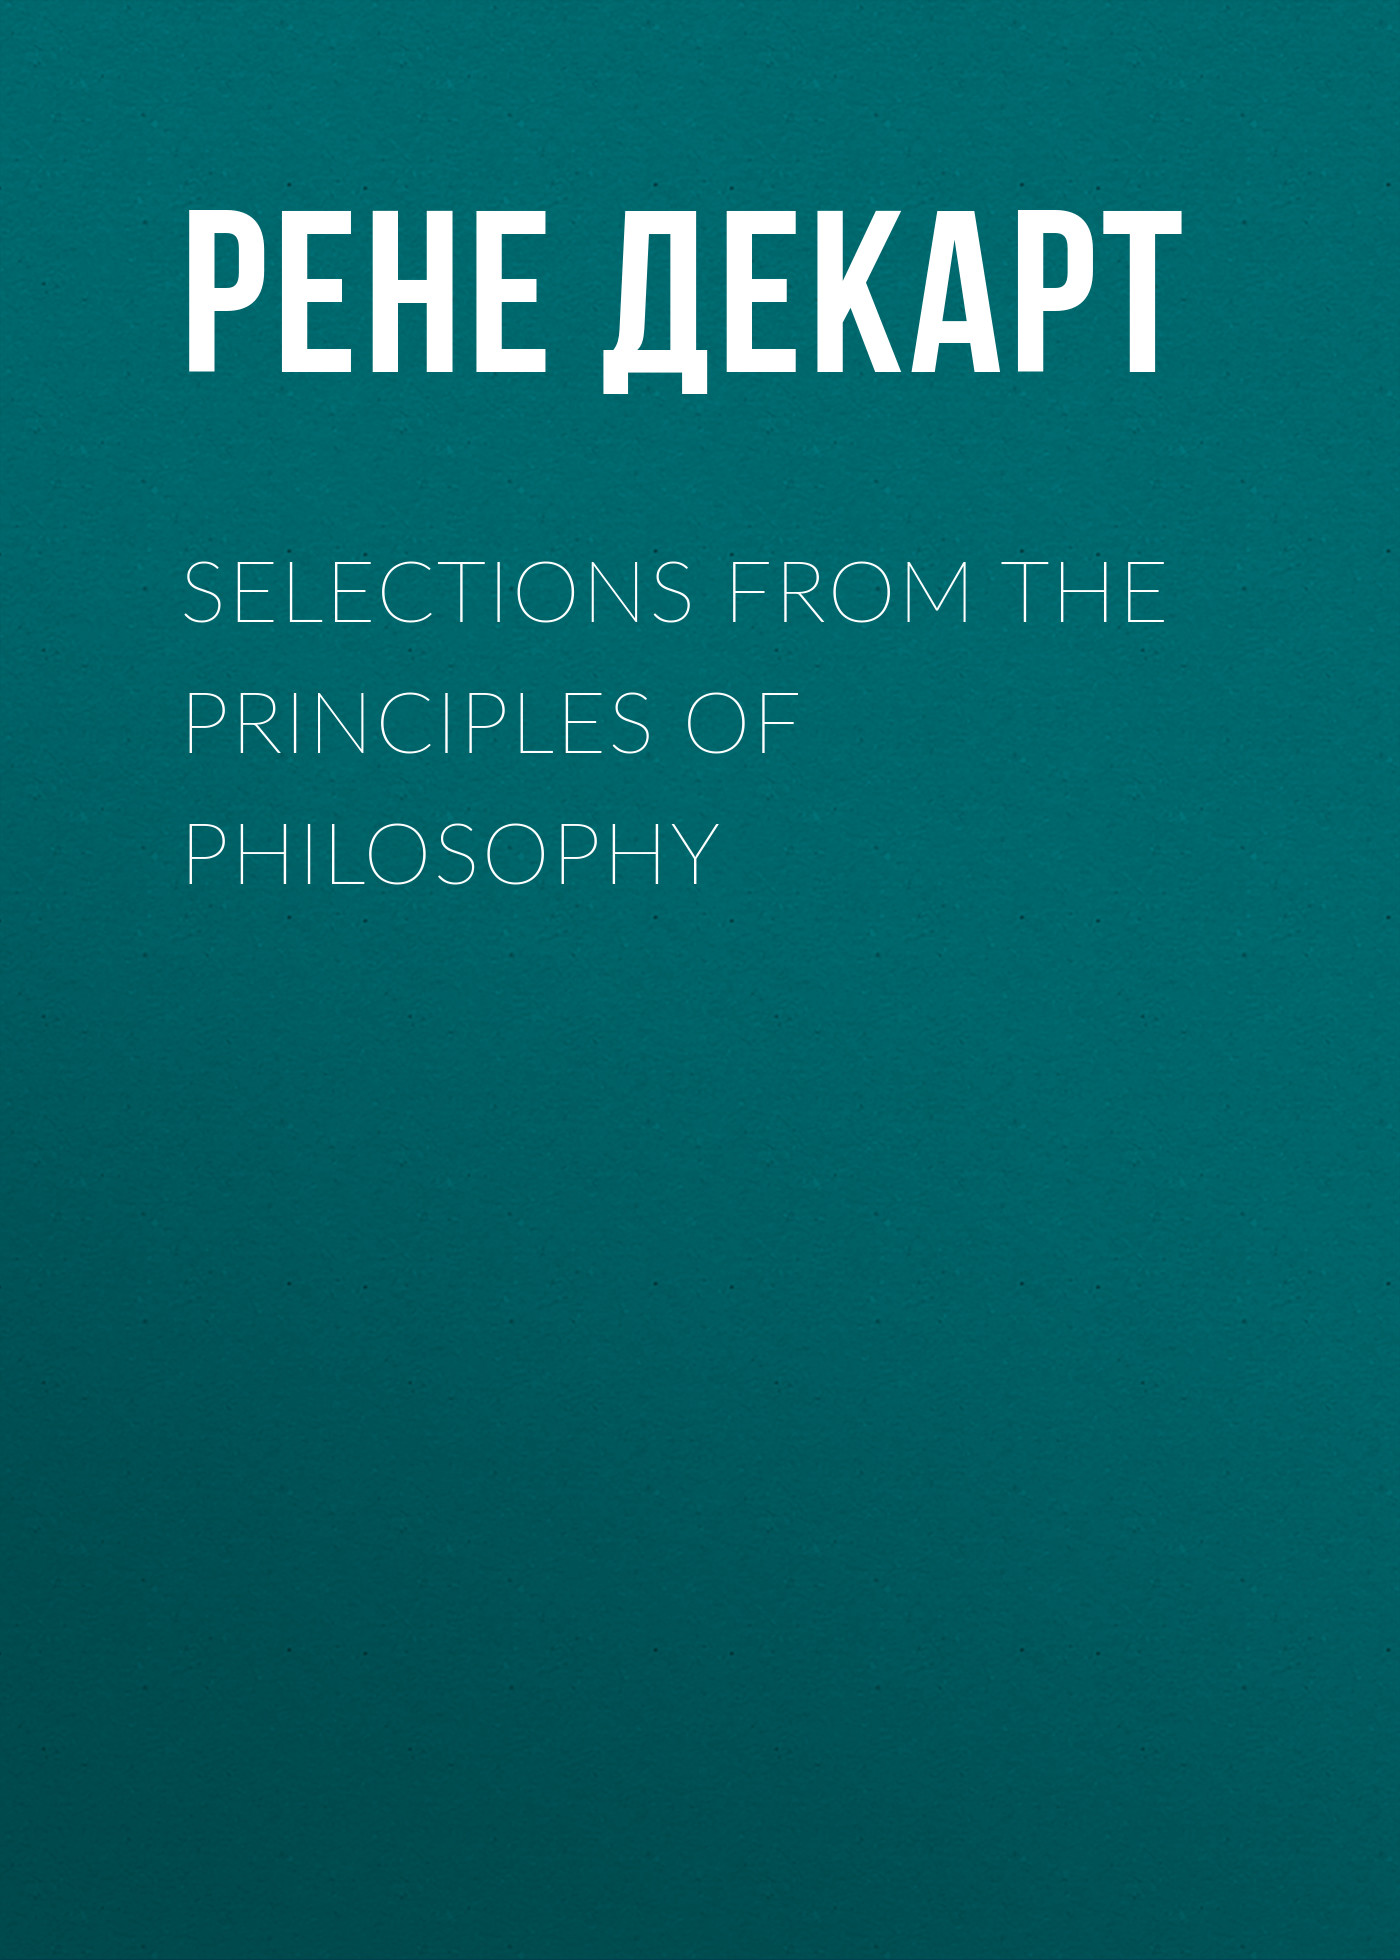 Фото - Рене Декарт Selections from the Principles of Philosophy trudy banta w a bird s eye view of assessment selections from editor s notes isbn 9781118176115